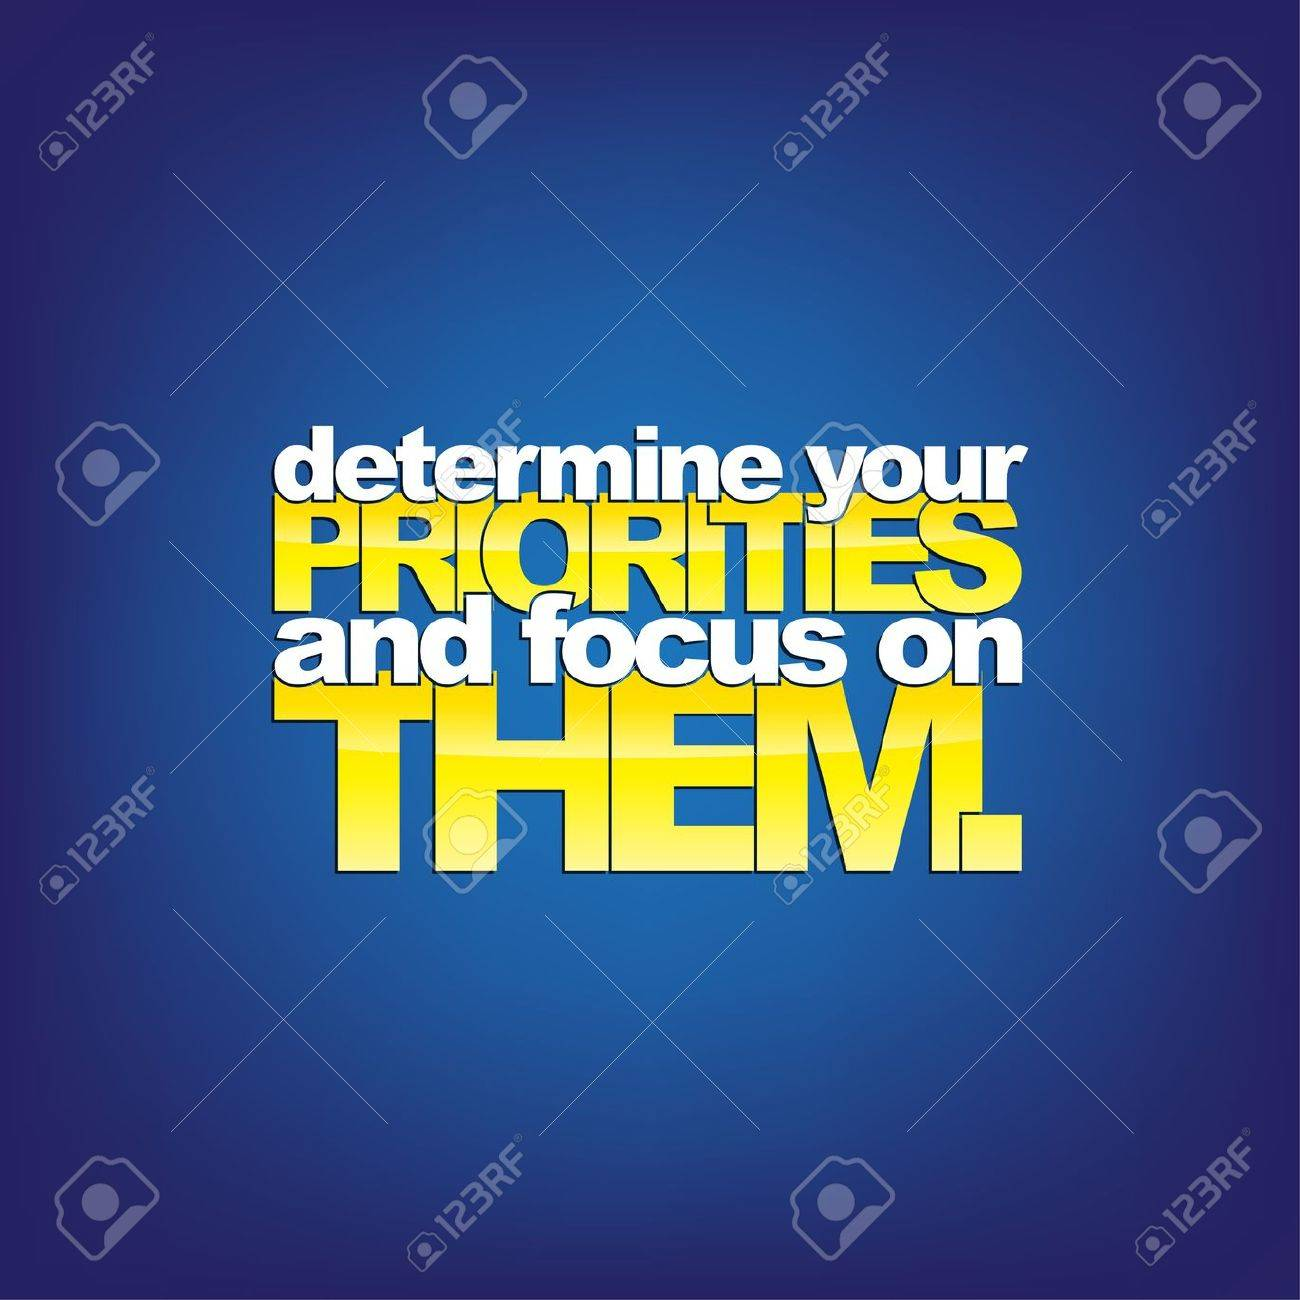 Determine your Priorities and focus on Them. Motivational background Stock Vector - 22176396